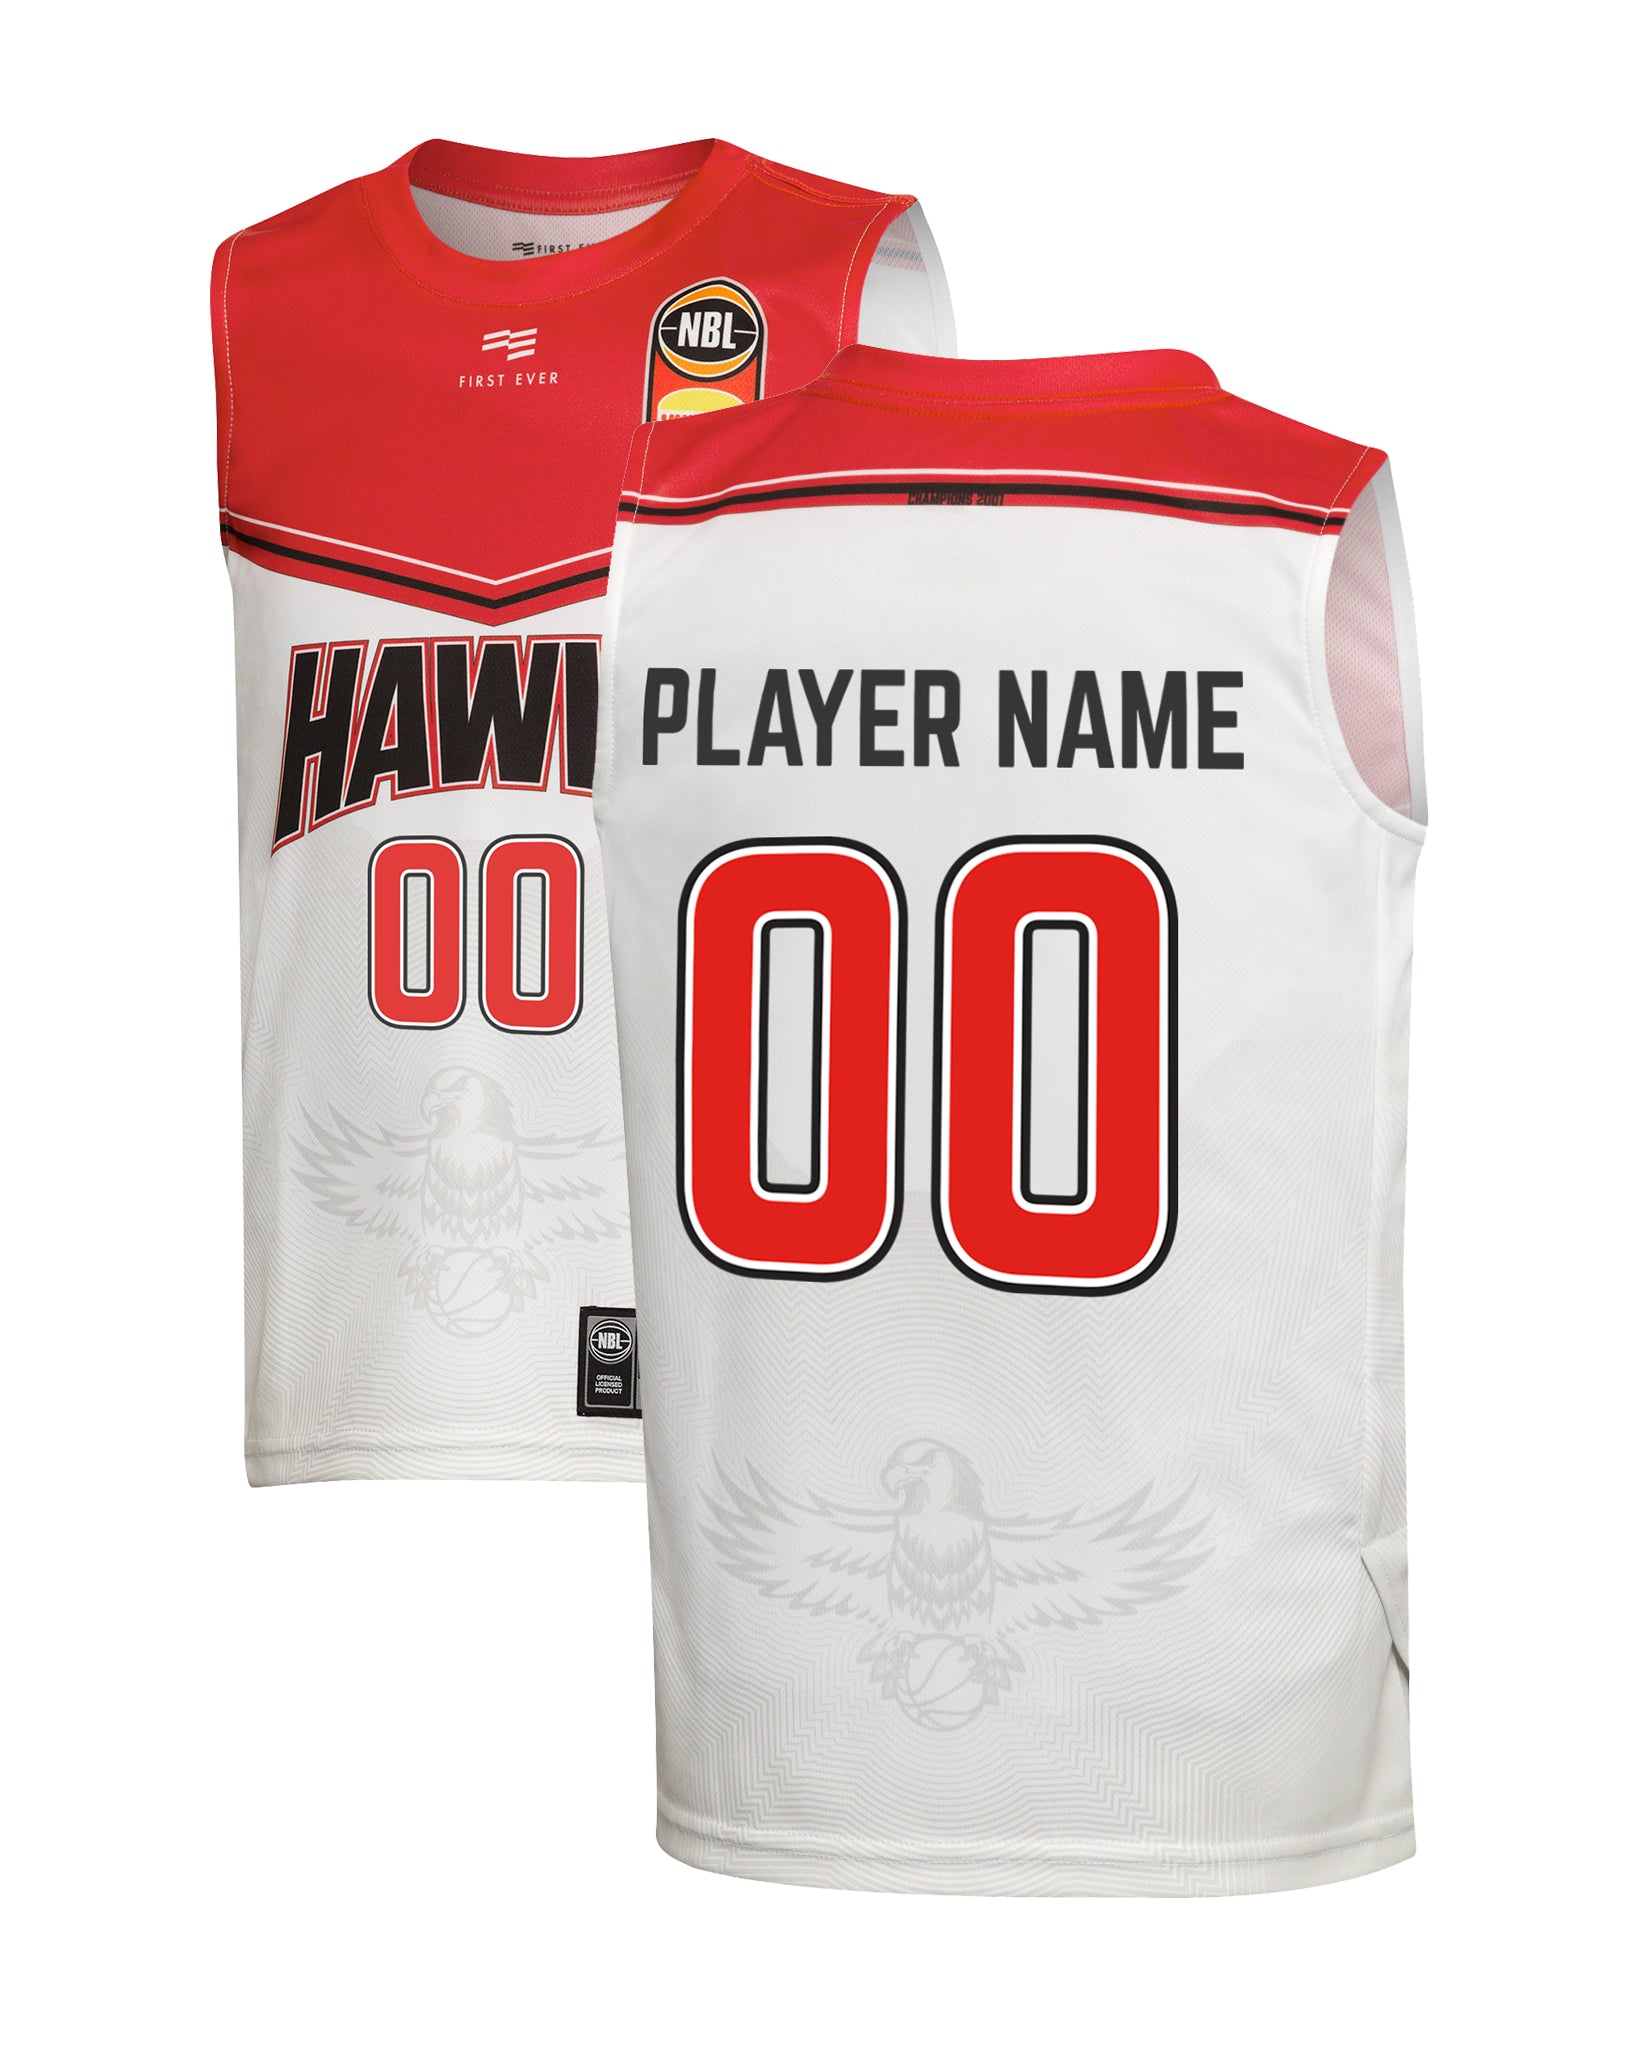 Illawarra Hawks 19/20 Youth Authentic Away Jersey - Other Players